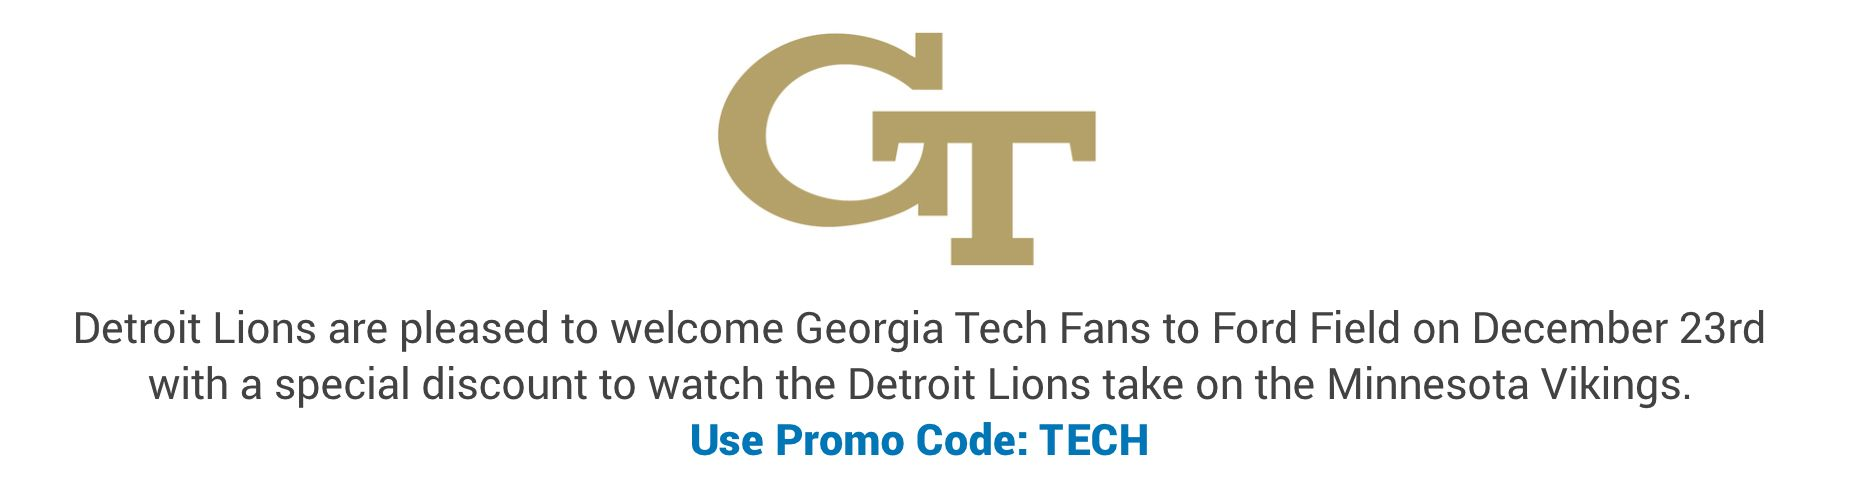 georgia-tech-ticket-offer-header